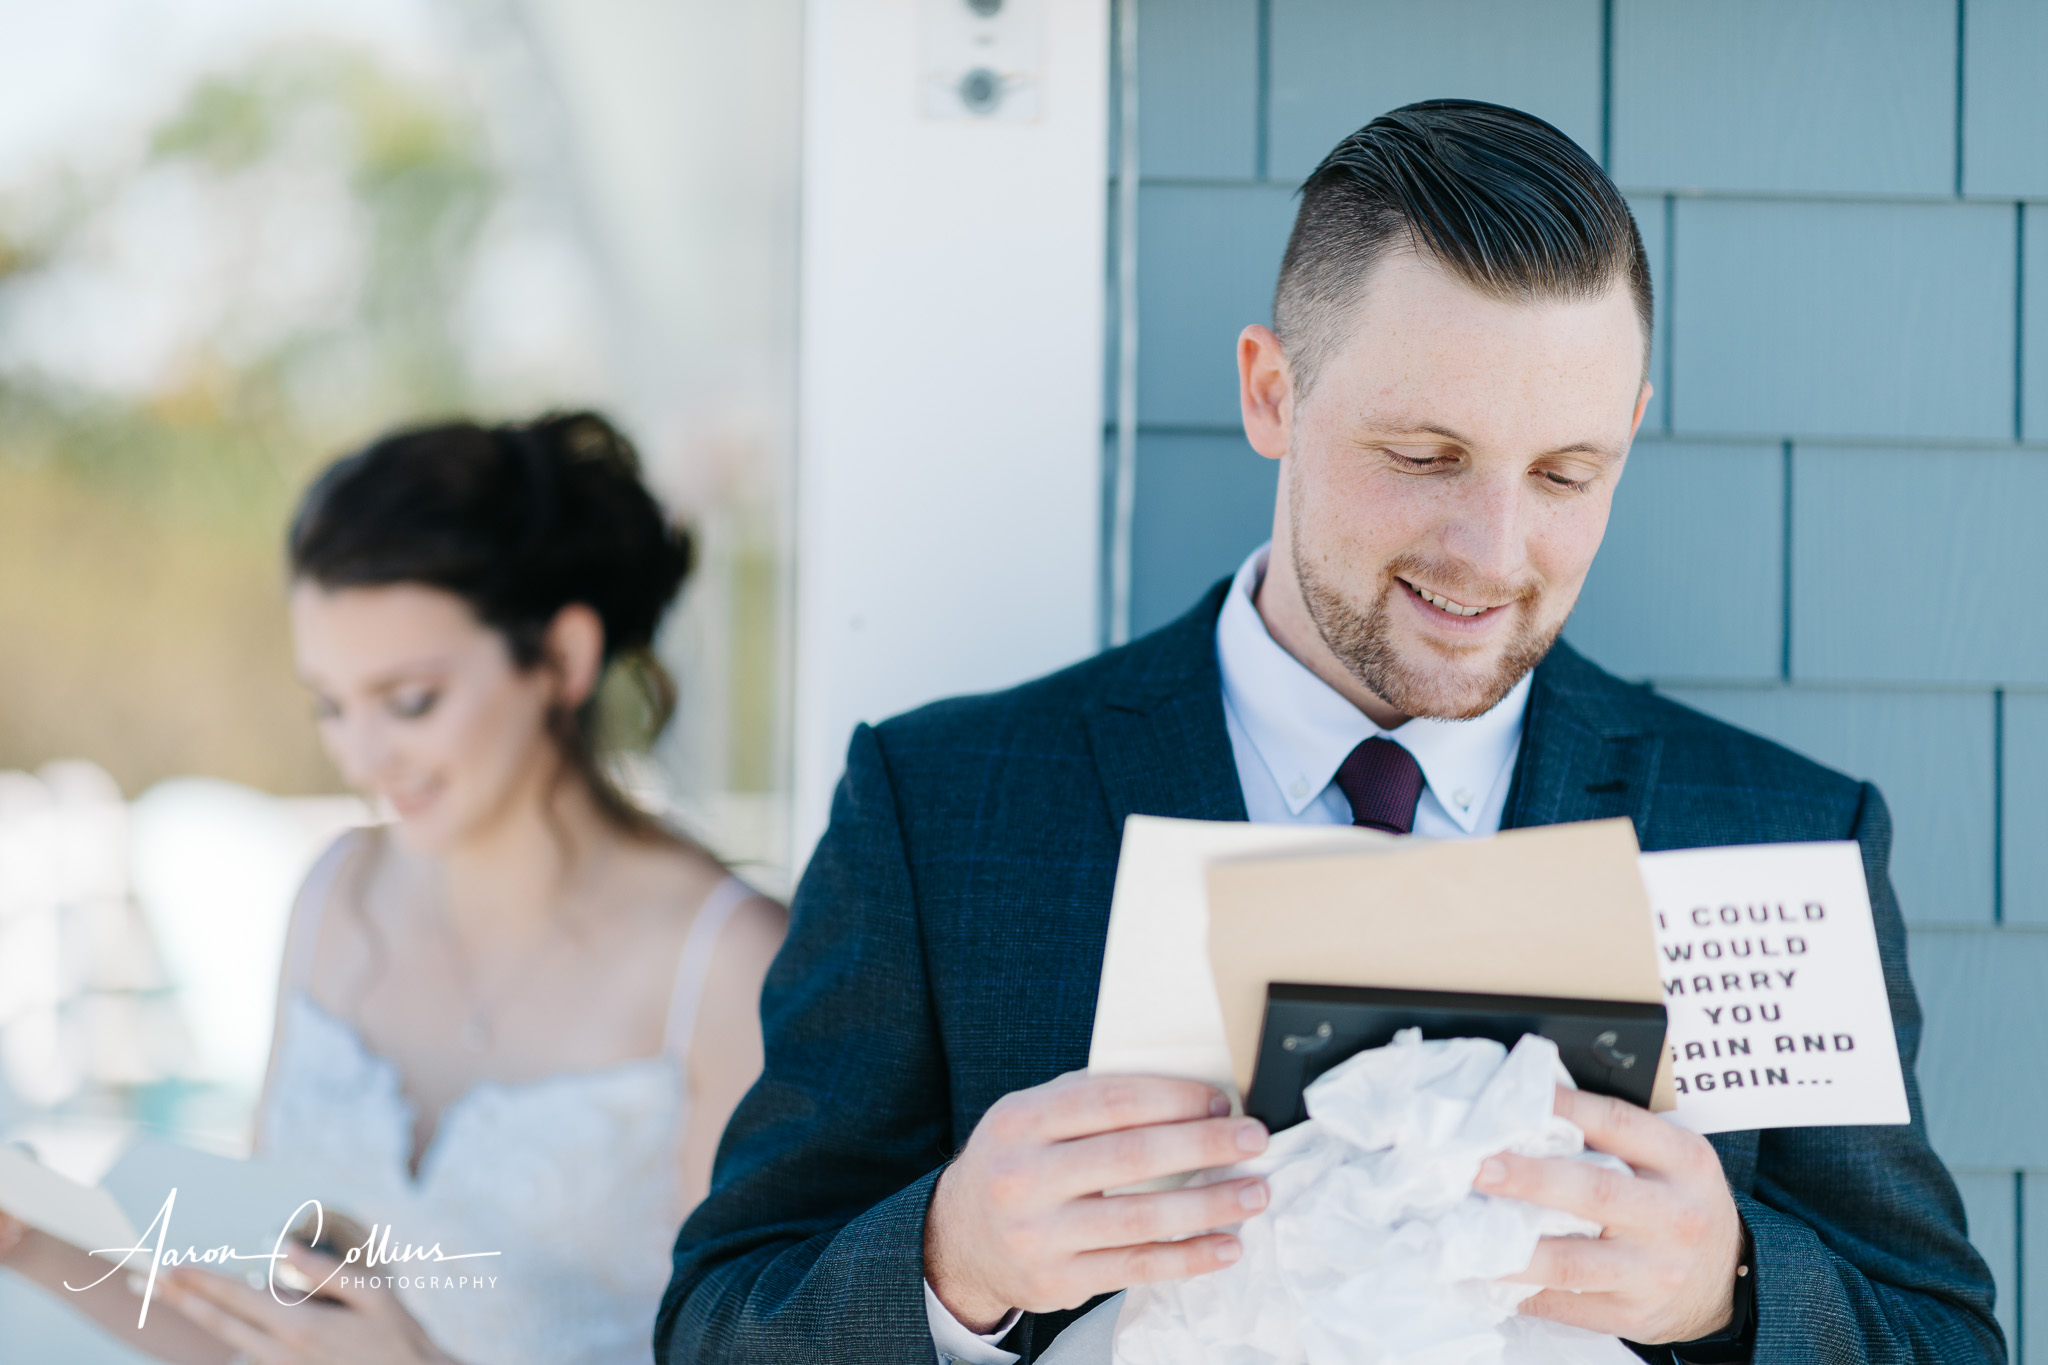 Groom looking at his gift while bride is concealed around the corner.